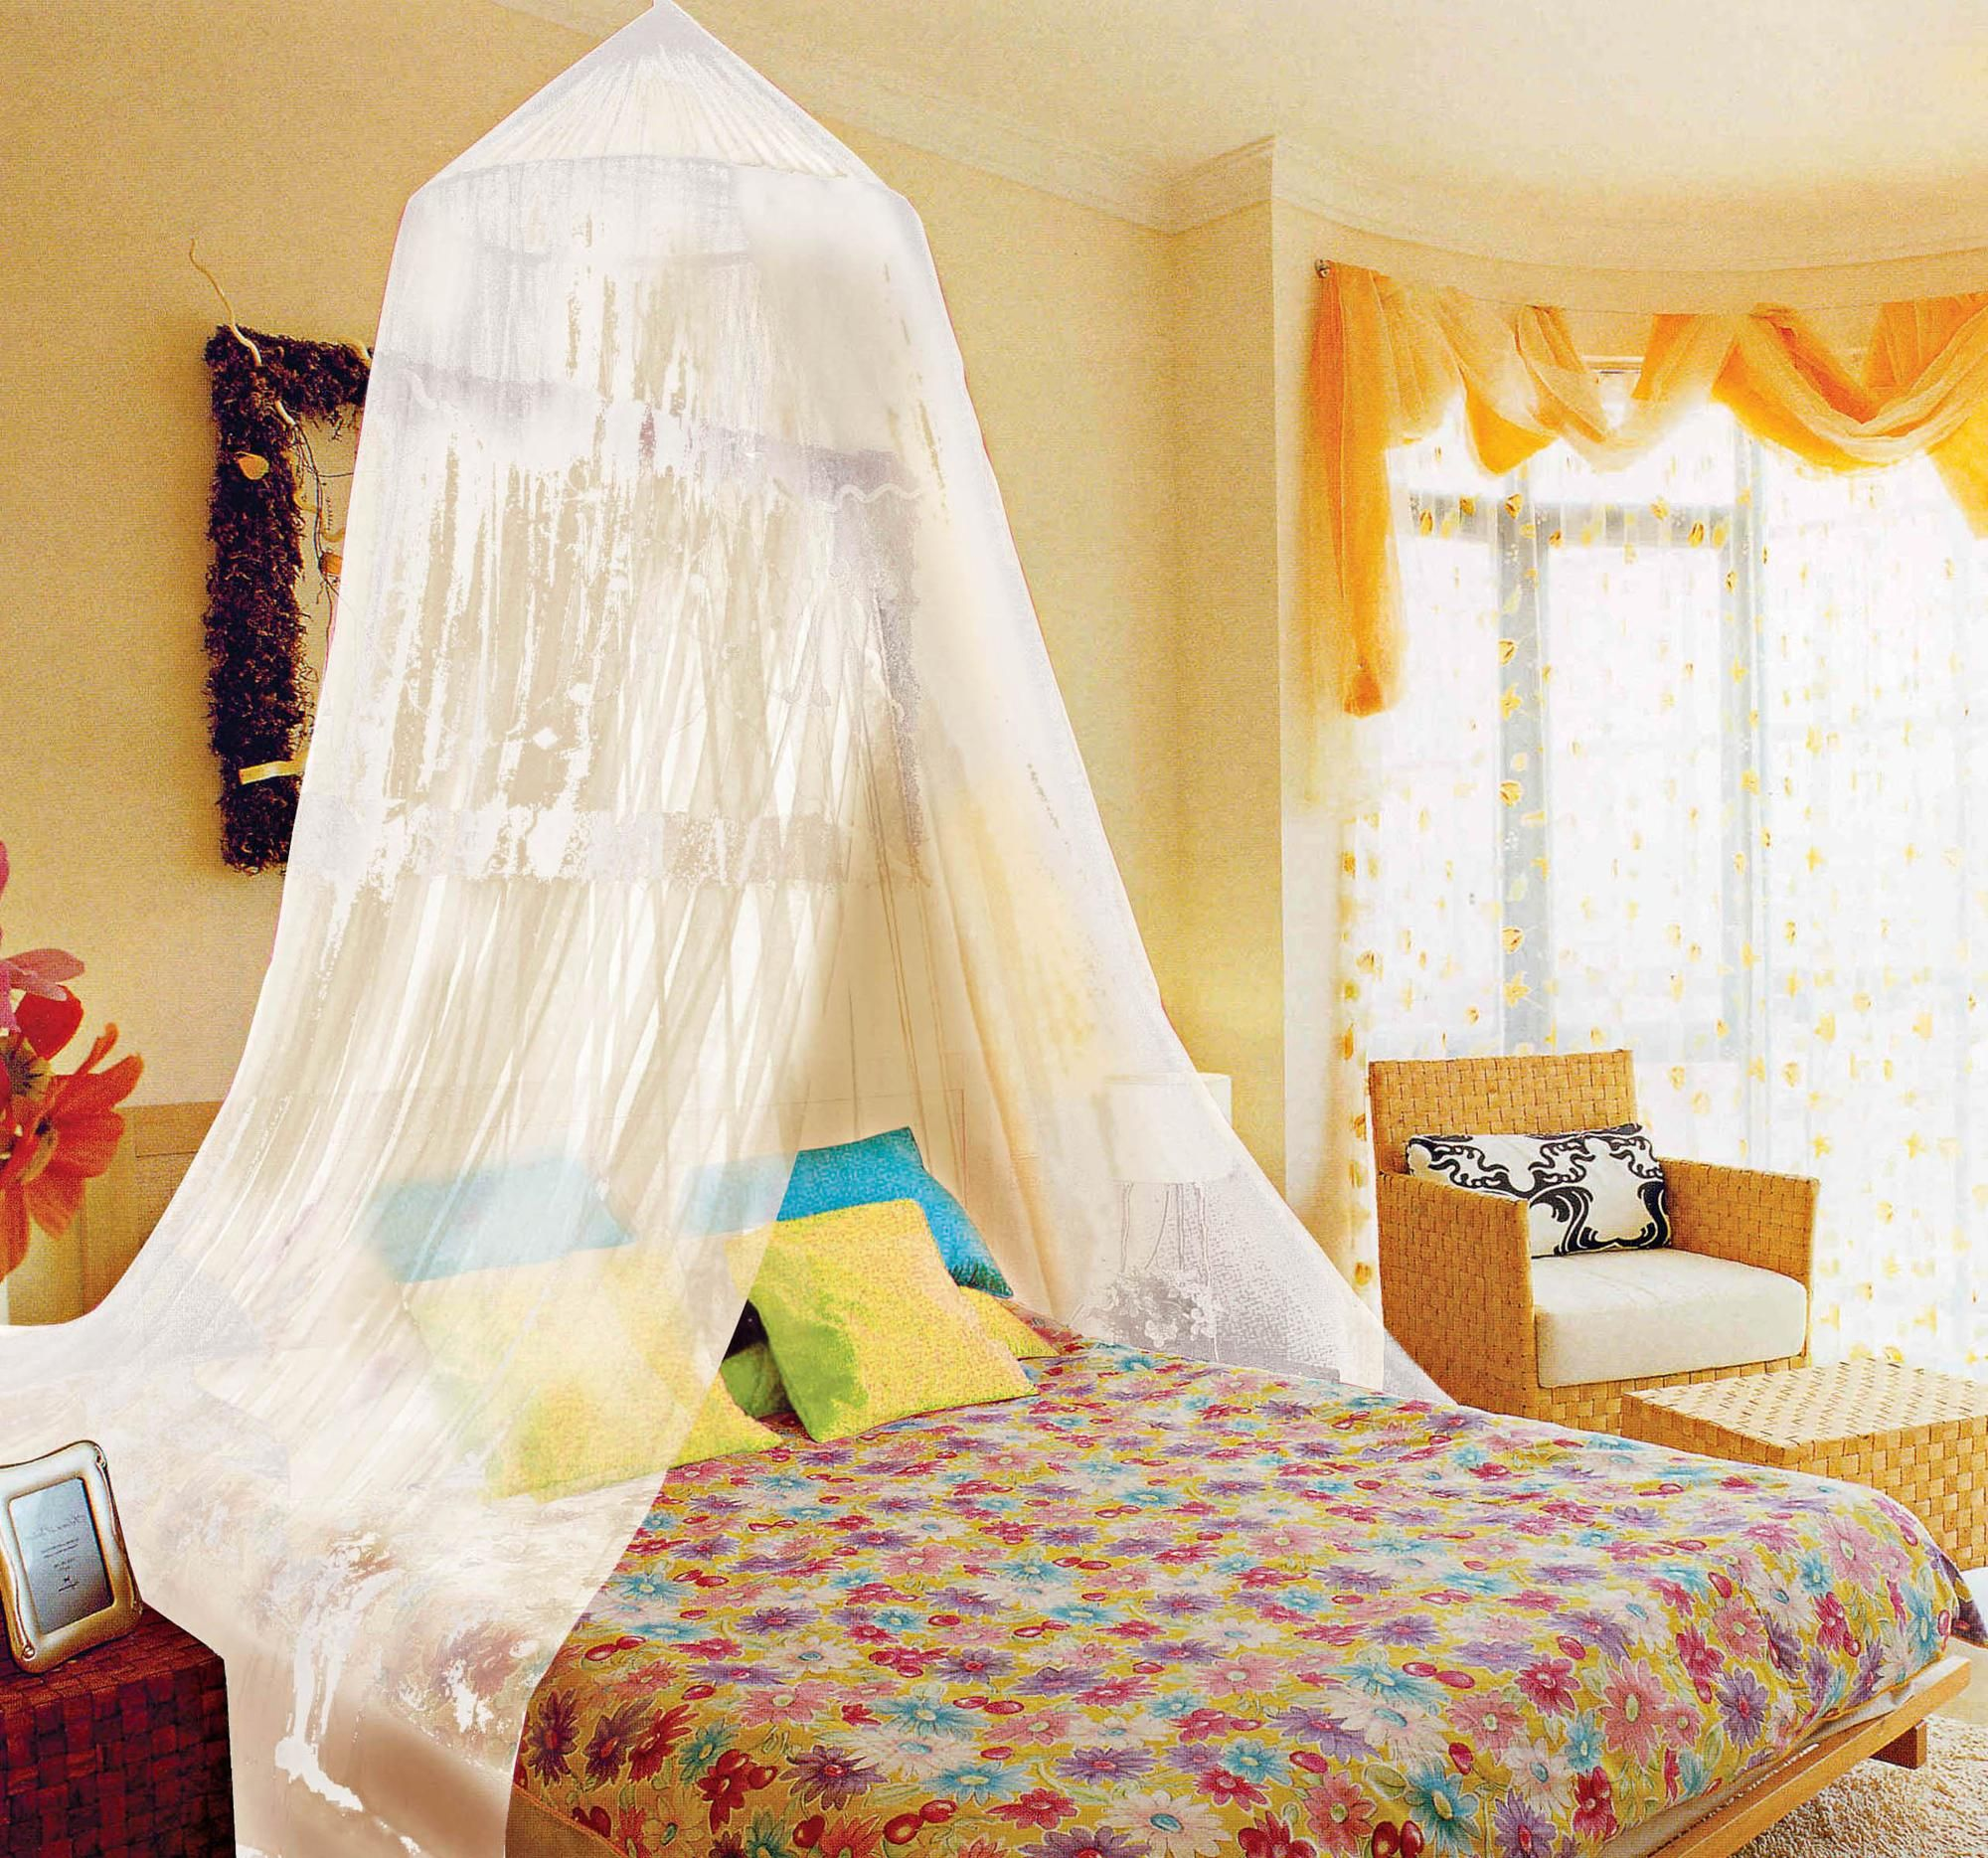 funny canopy bed decor for girls with yellow wall paint color and lovely purple curtains canopy and colorful flowers motif bed also yellow arm chairs near